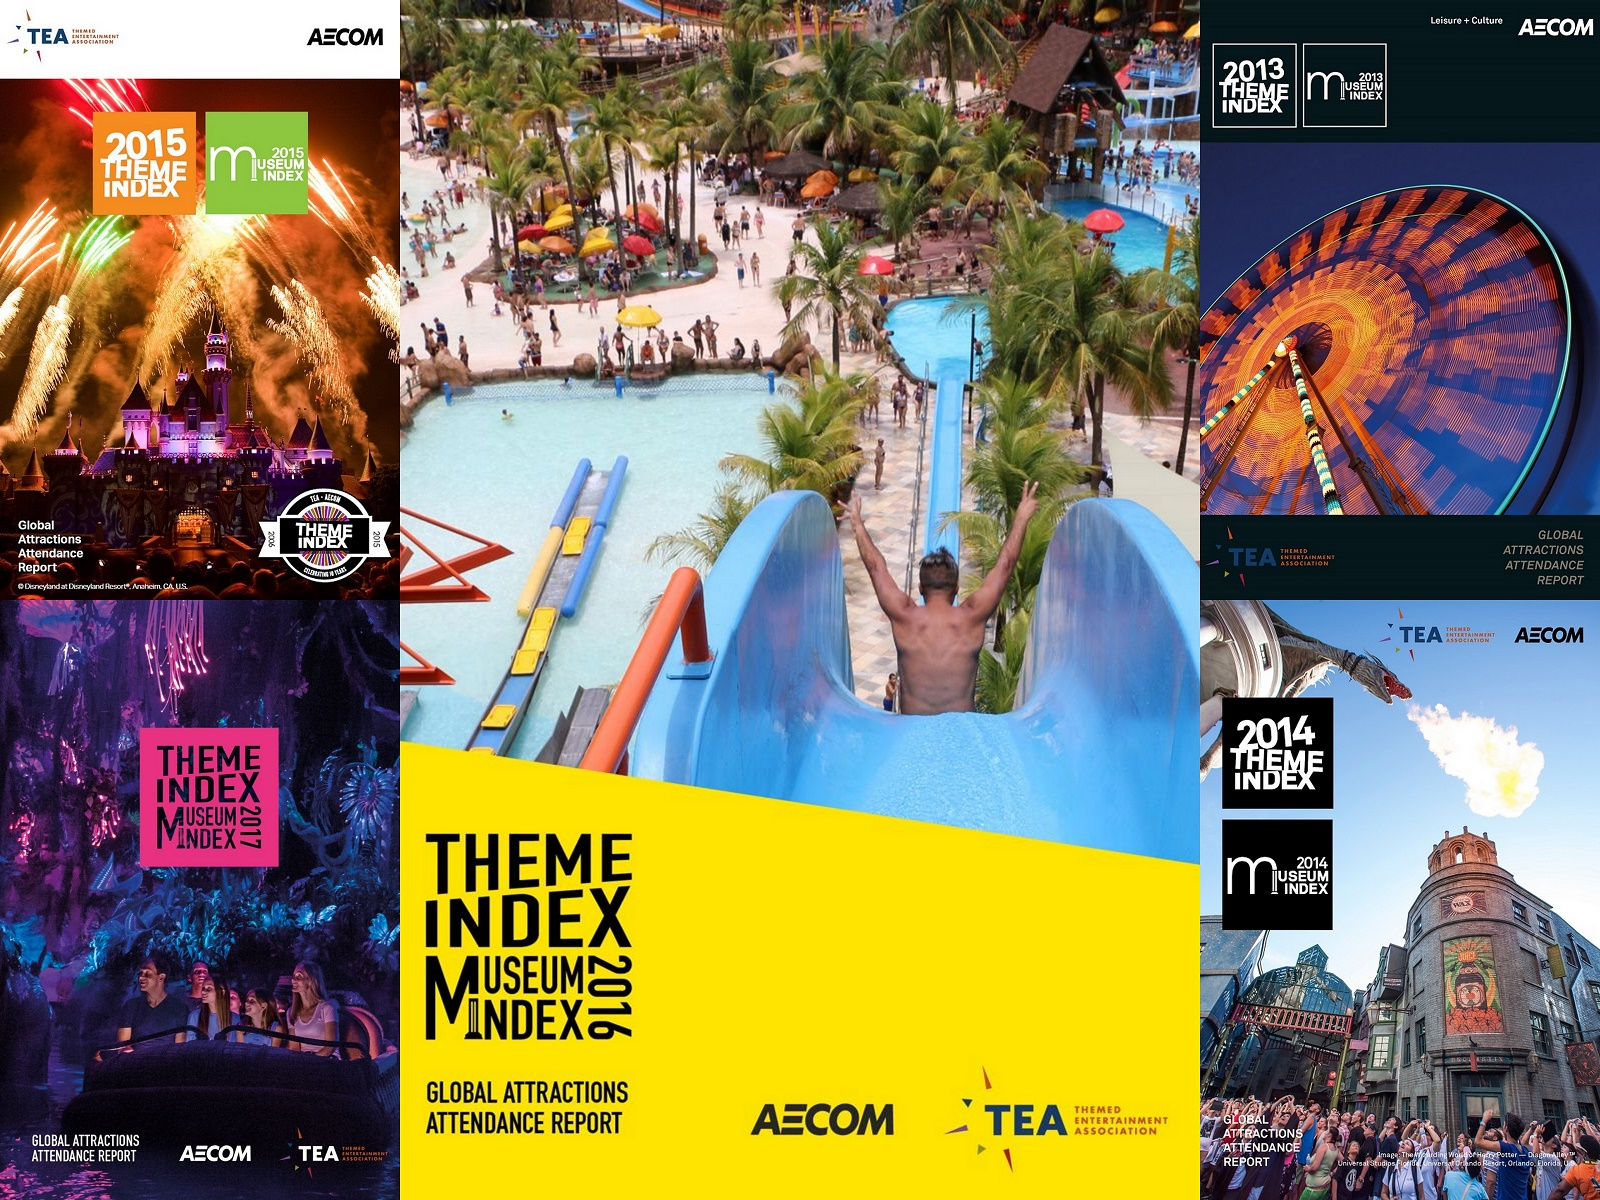 Looking for the new TEA/AECOM Theme Index and Museum Index?